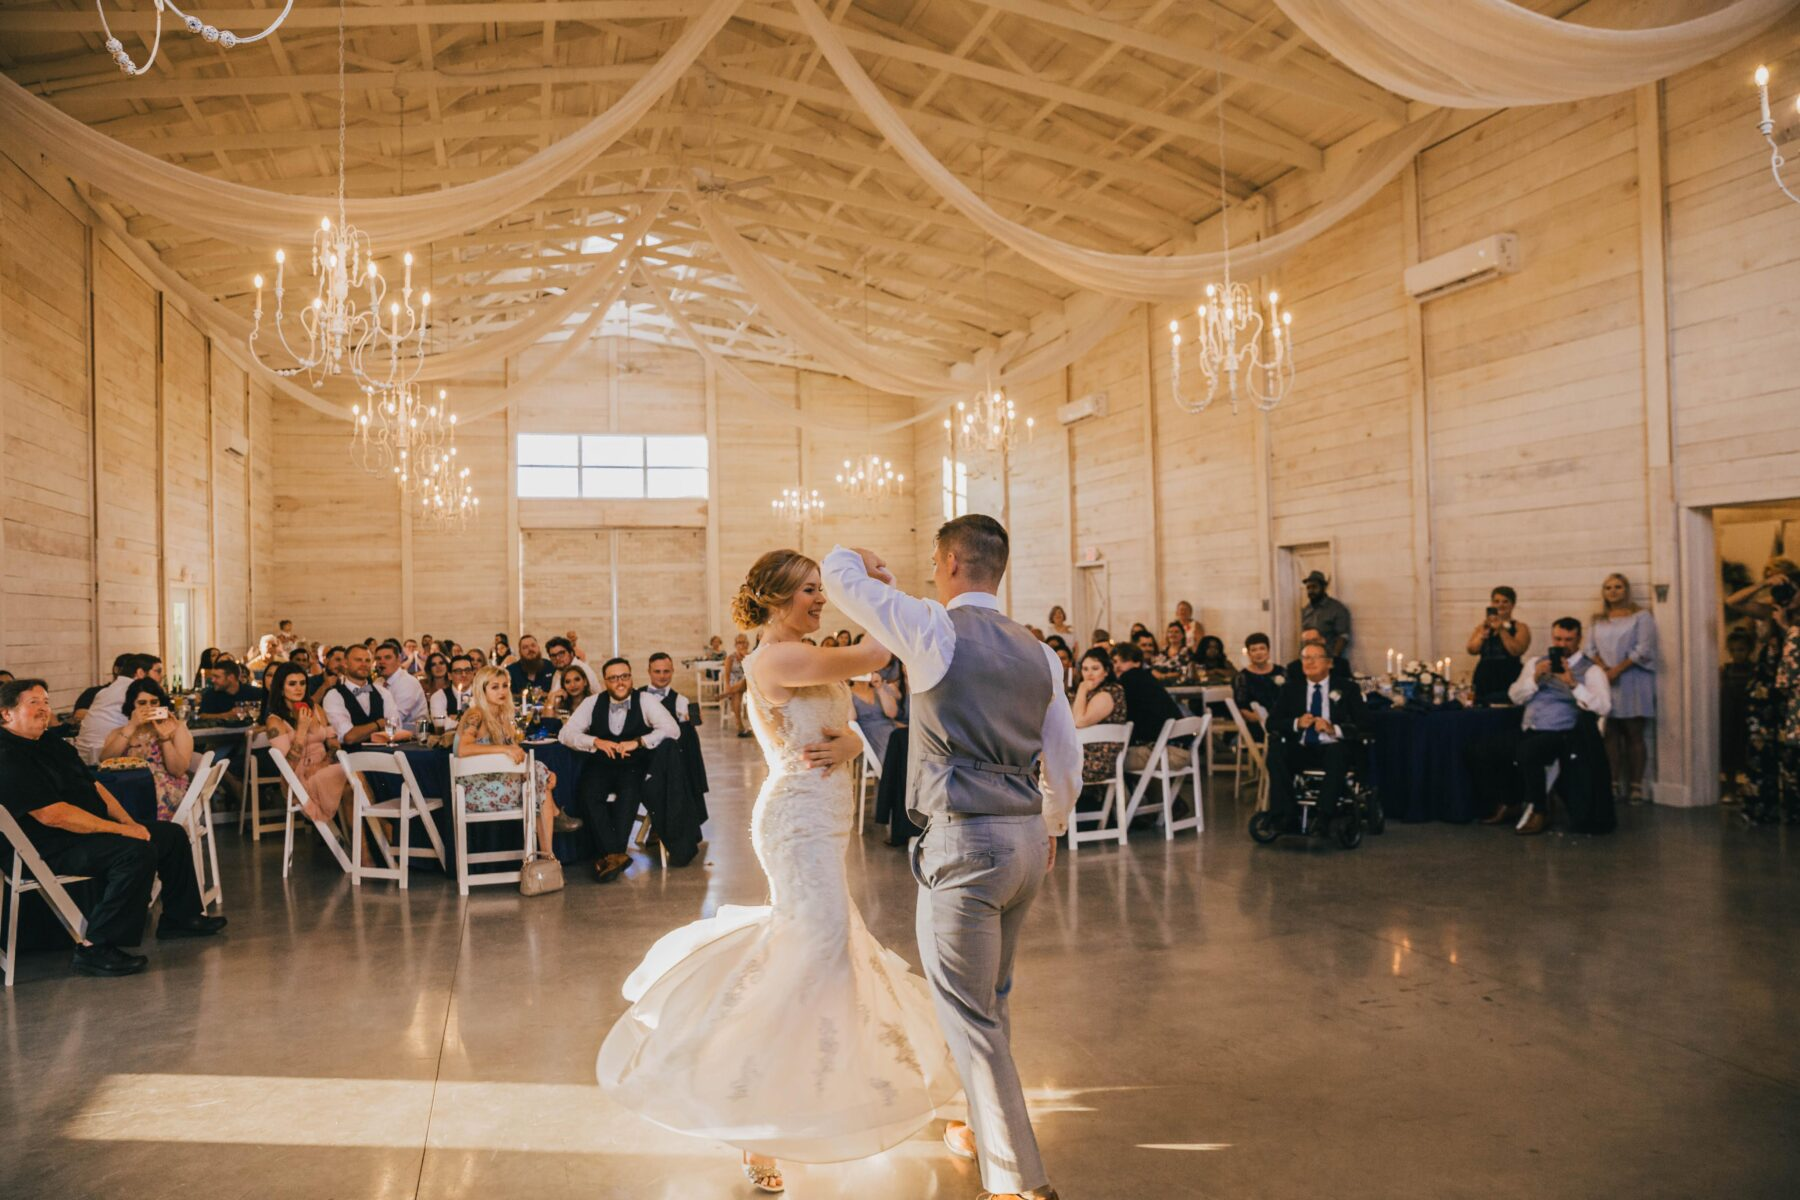 First dance: White Dove Barn Wedding by Grace Upon Grace Photography featured on Nashville Bride Guide